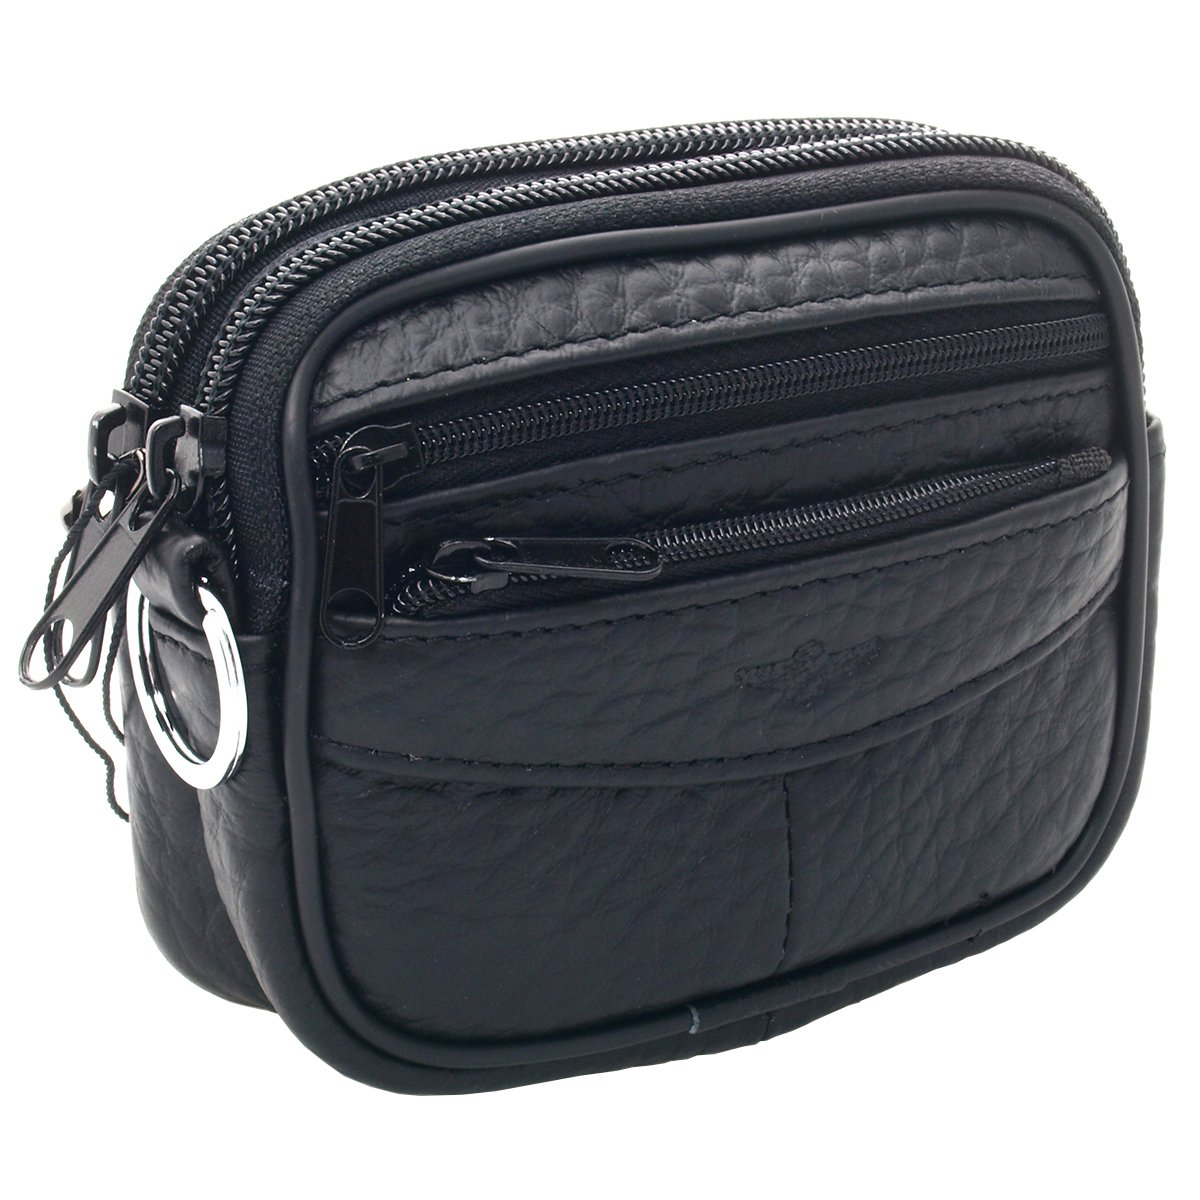 New Unisex Leather Small Waist Bag Wallet Coin Pocket Belt Loops Purse (Black)